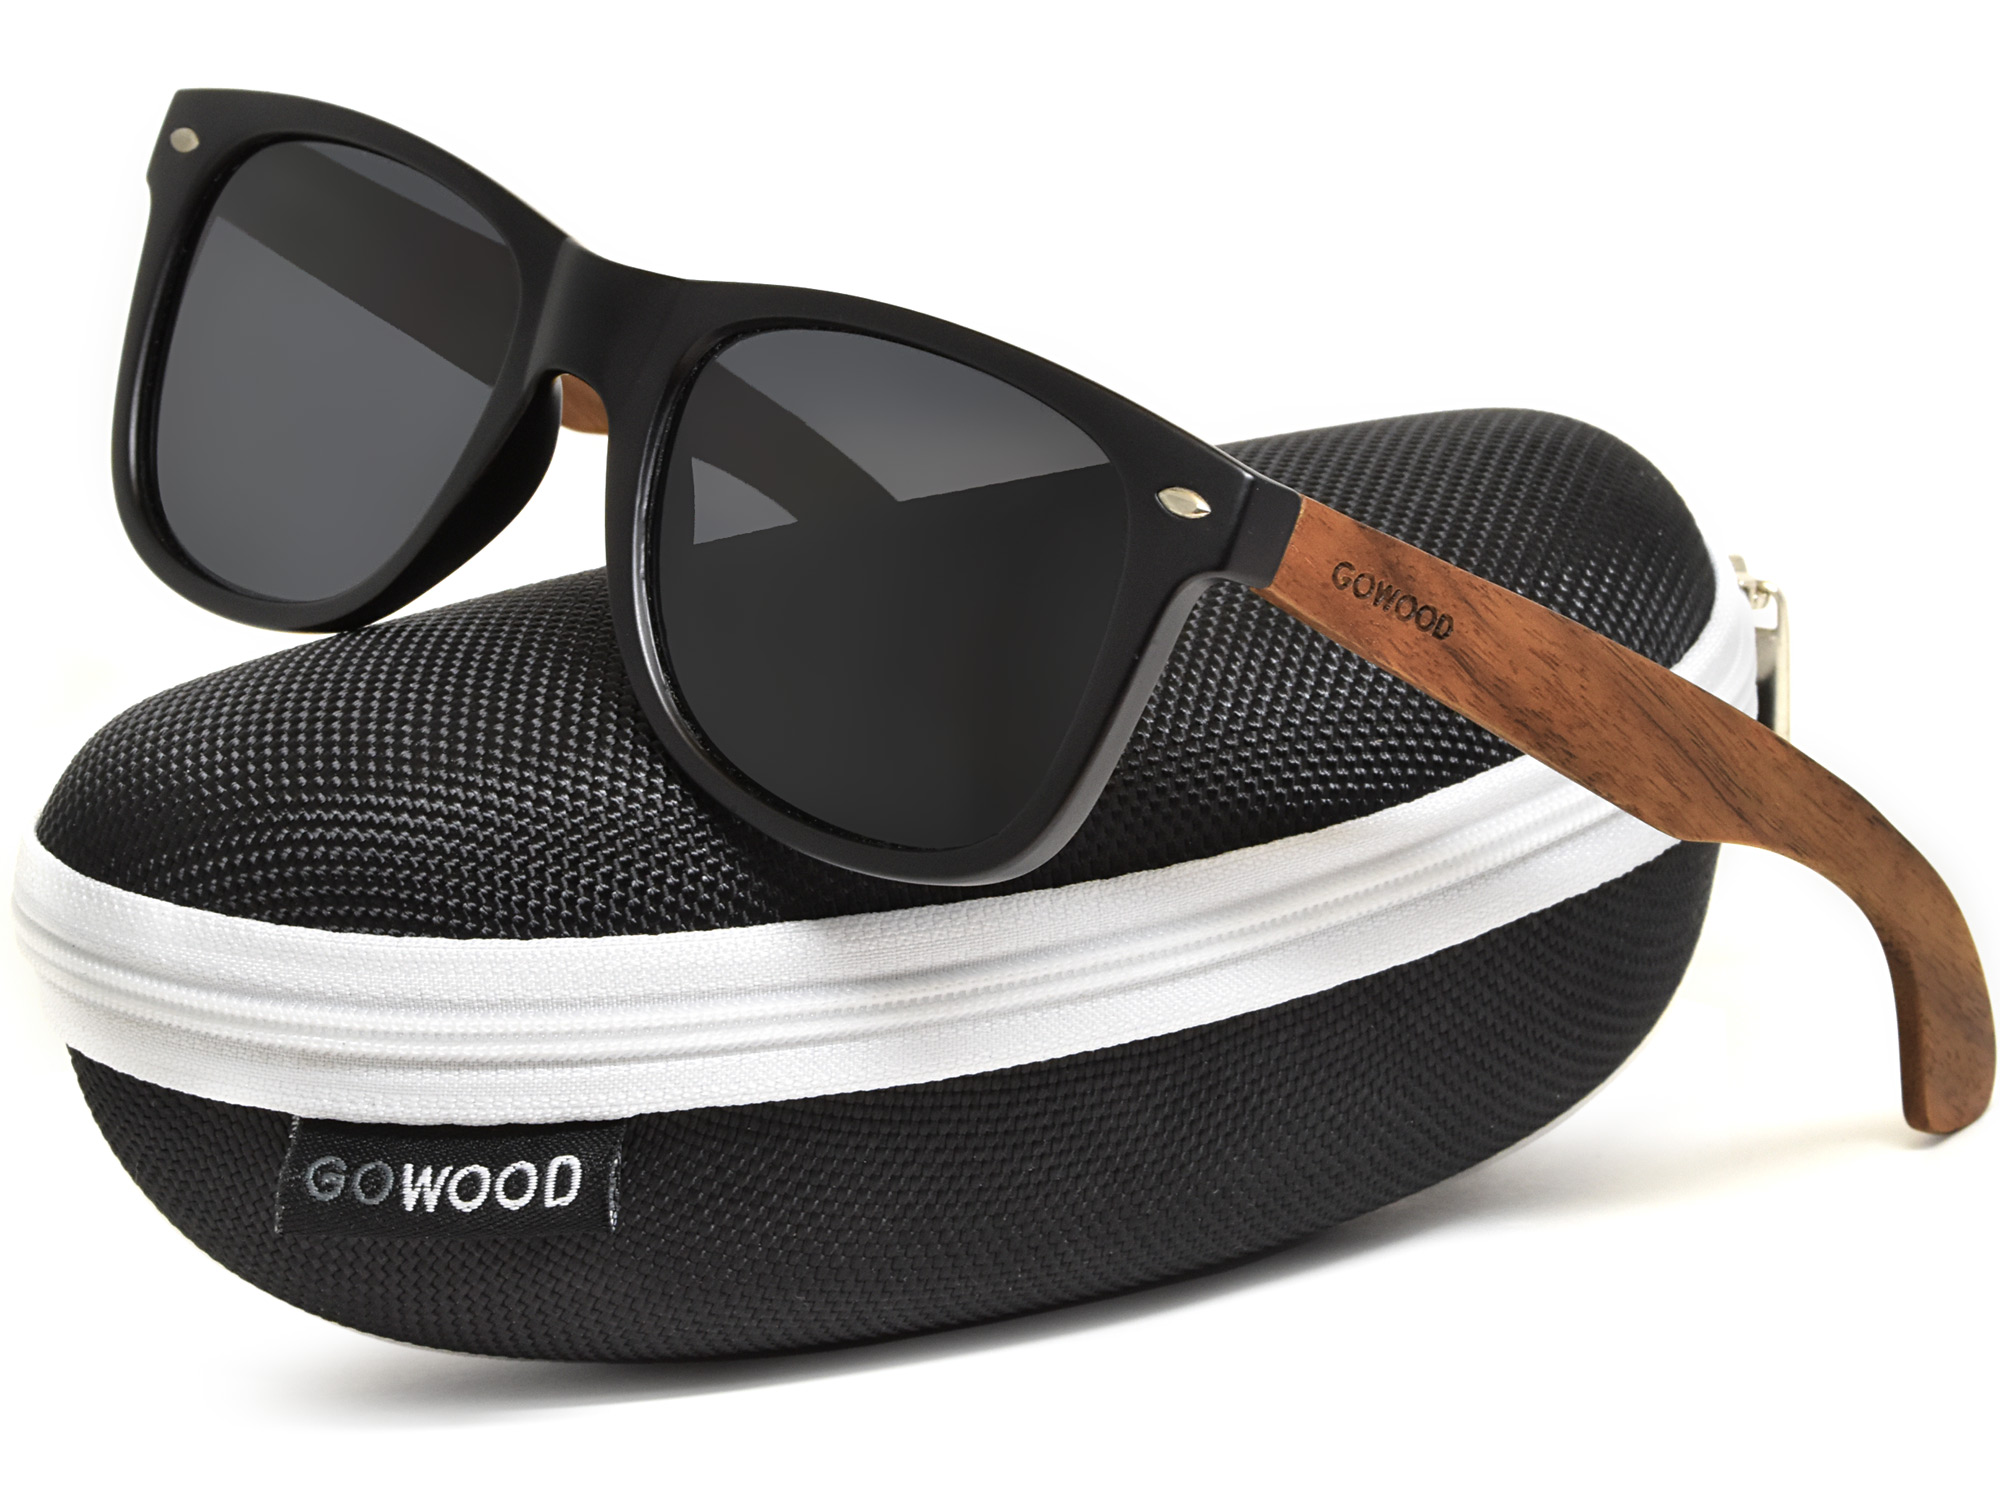 Walnut wood sunglasses with black polarized lenses in a zipper case